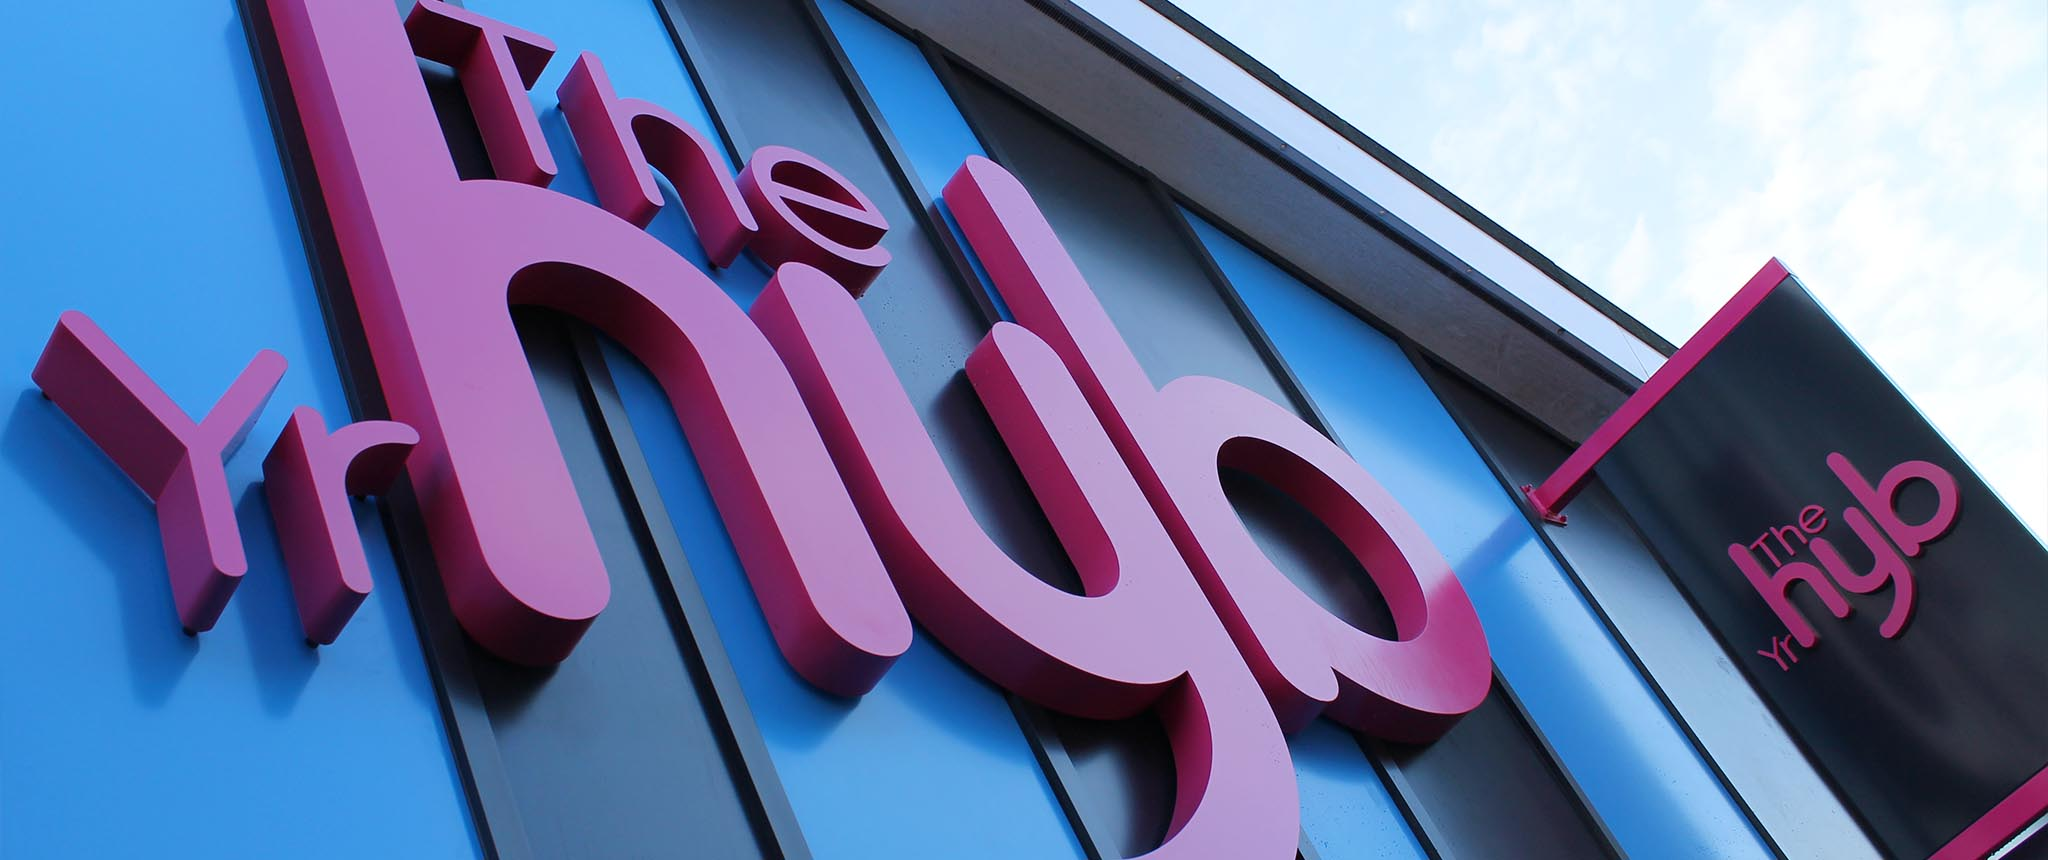 Photo of a Hub sign outside the building